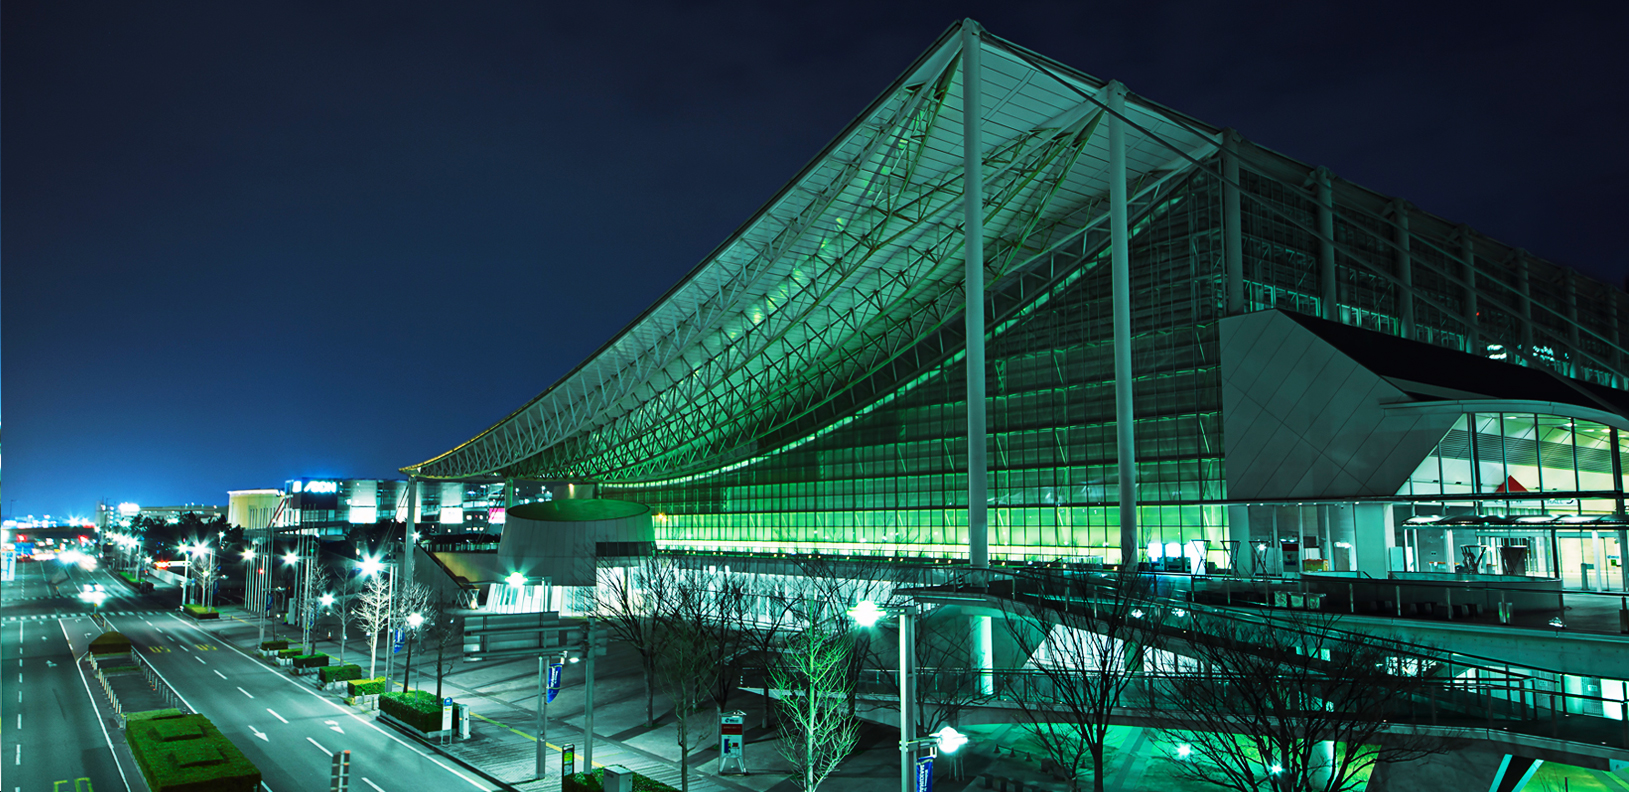 kisarazu muslim Hotel nikko osaka offers great deals on affordable luxury hotel rooms and suites in osaka, japan hotel nikko osaka is the perfect hotel for business and leisure travel accommodations.